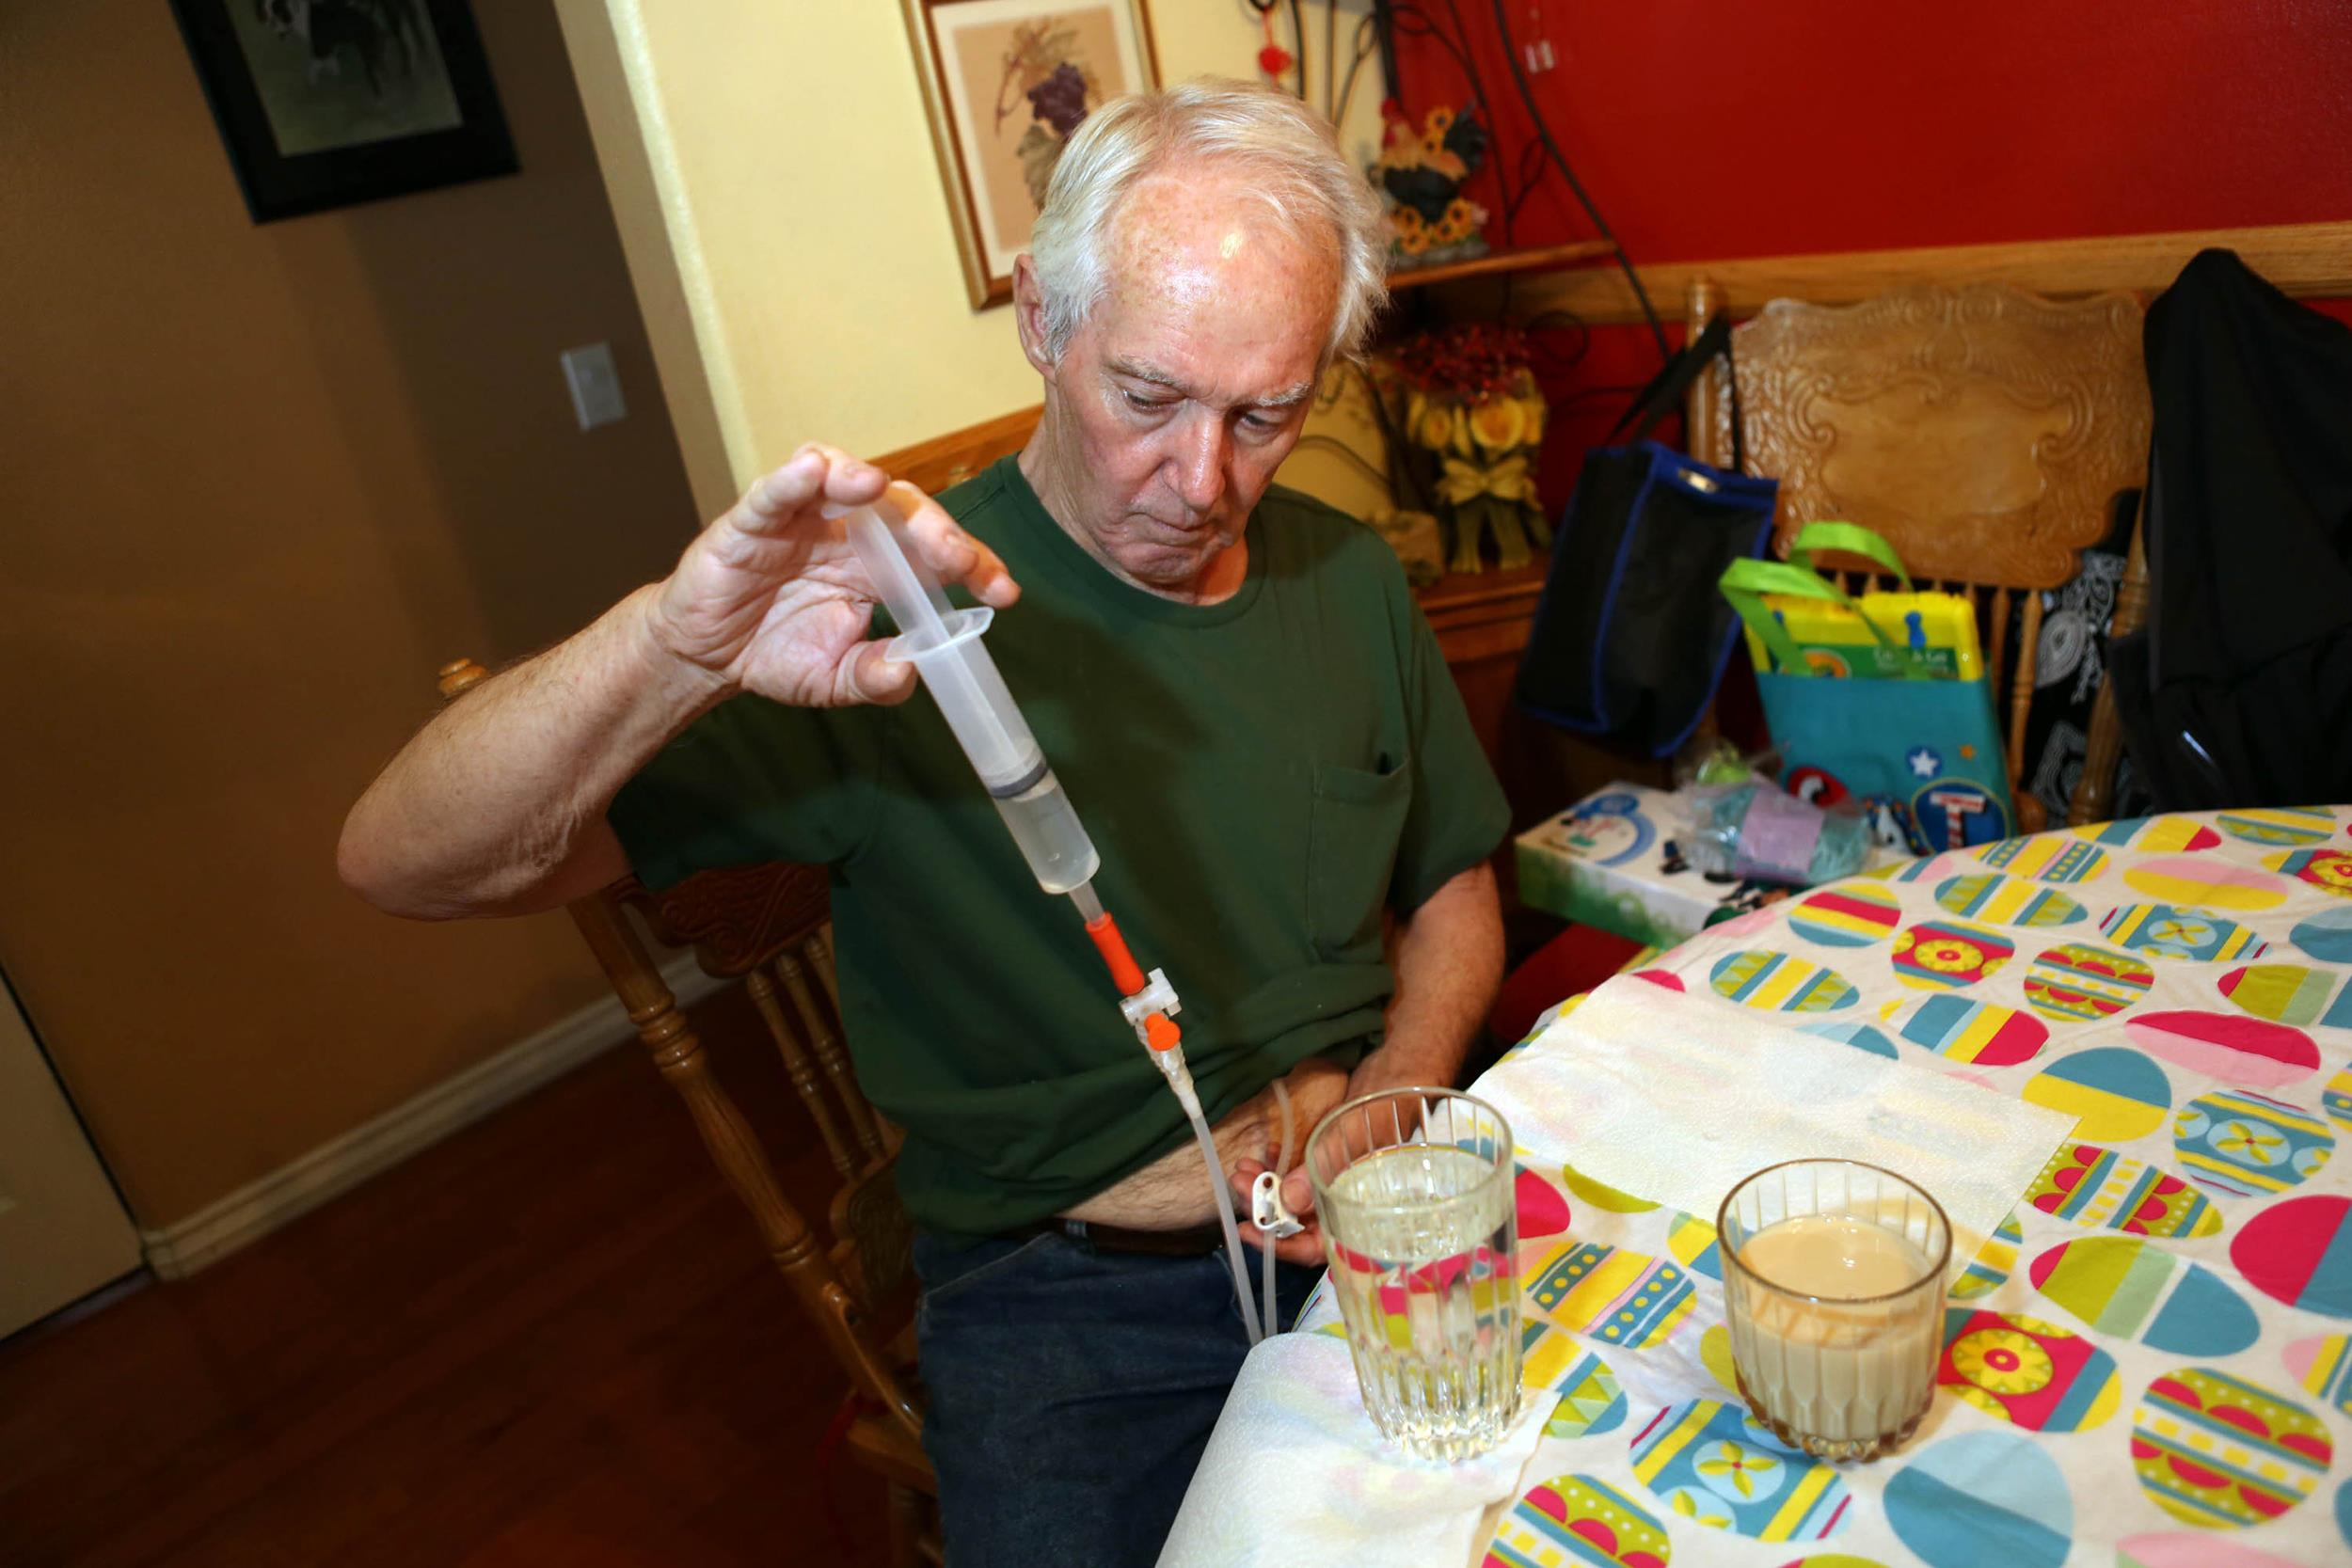 Image: Bob Hoaglan uses a feeding tube to eat due to ALS